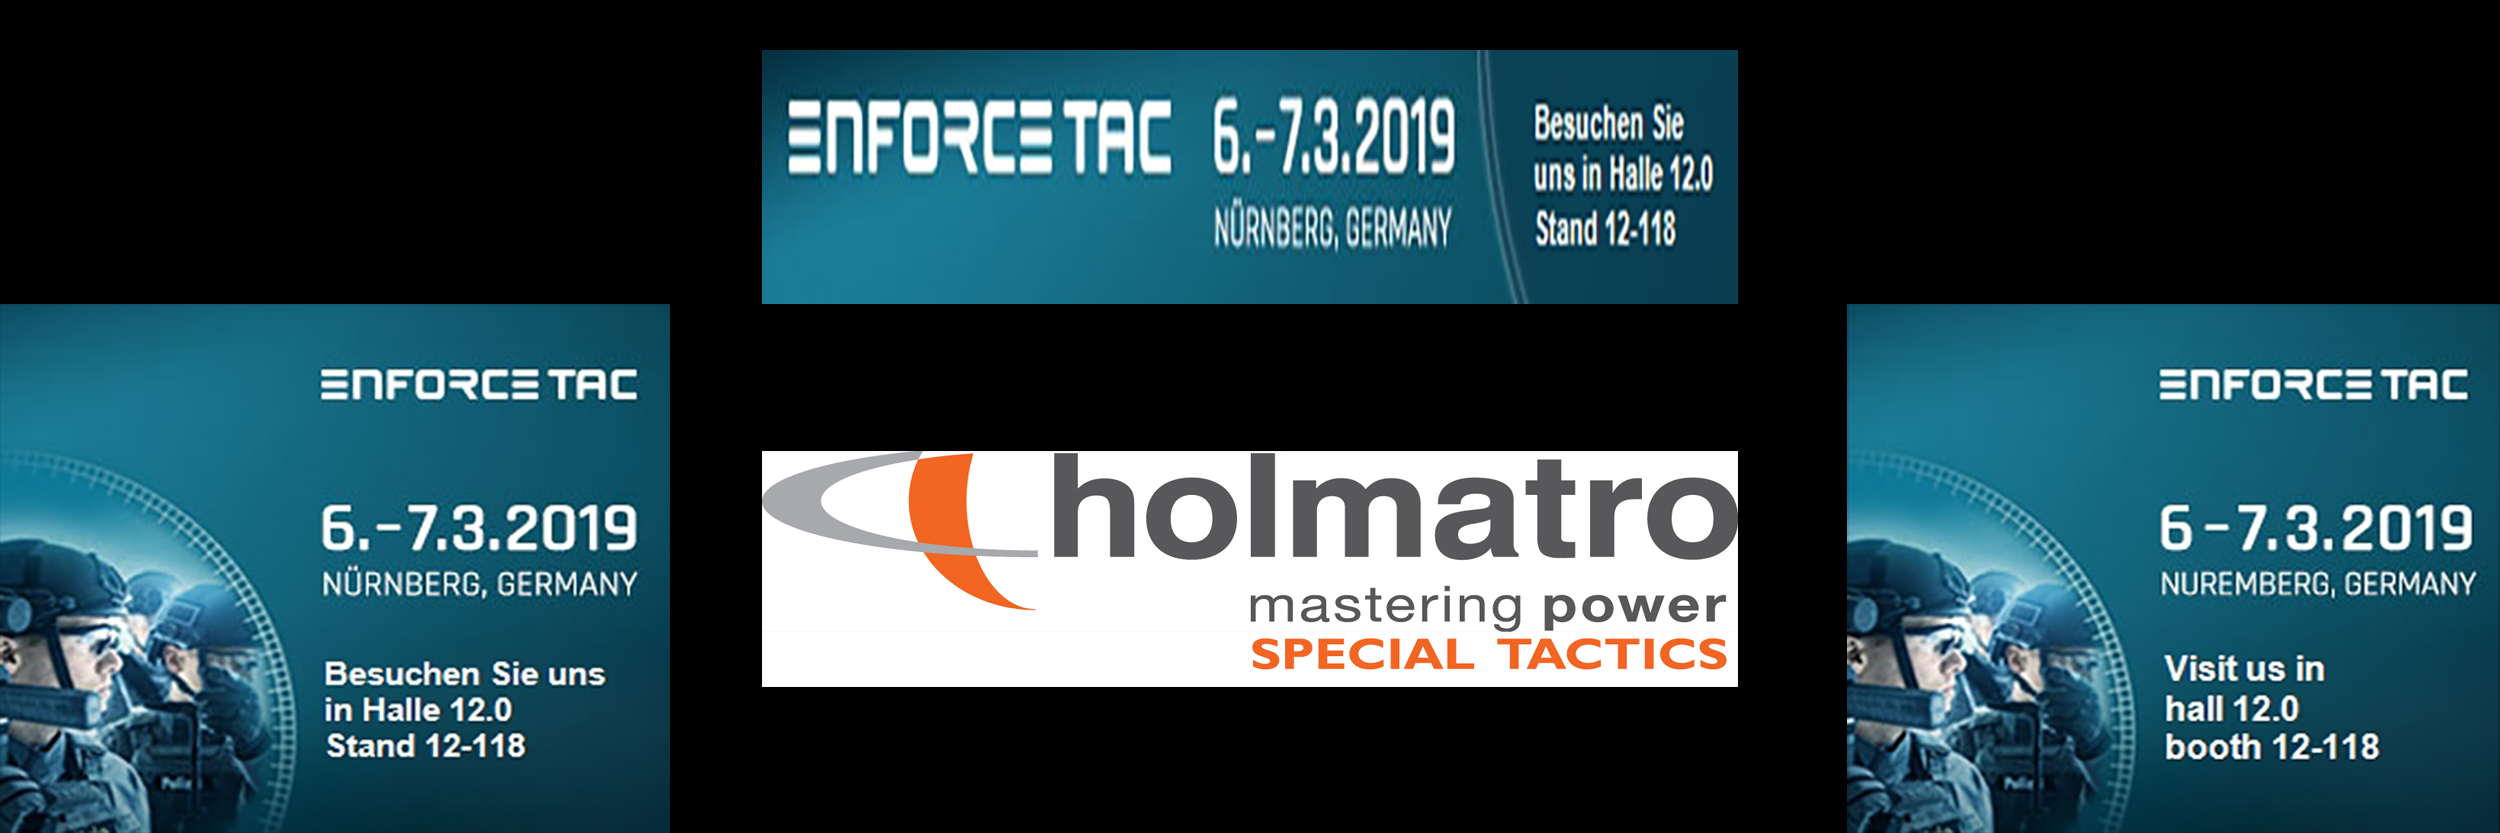 ENFORCETAC 2019